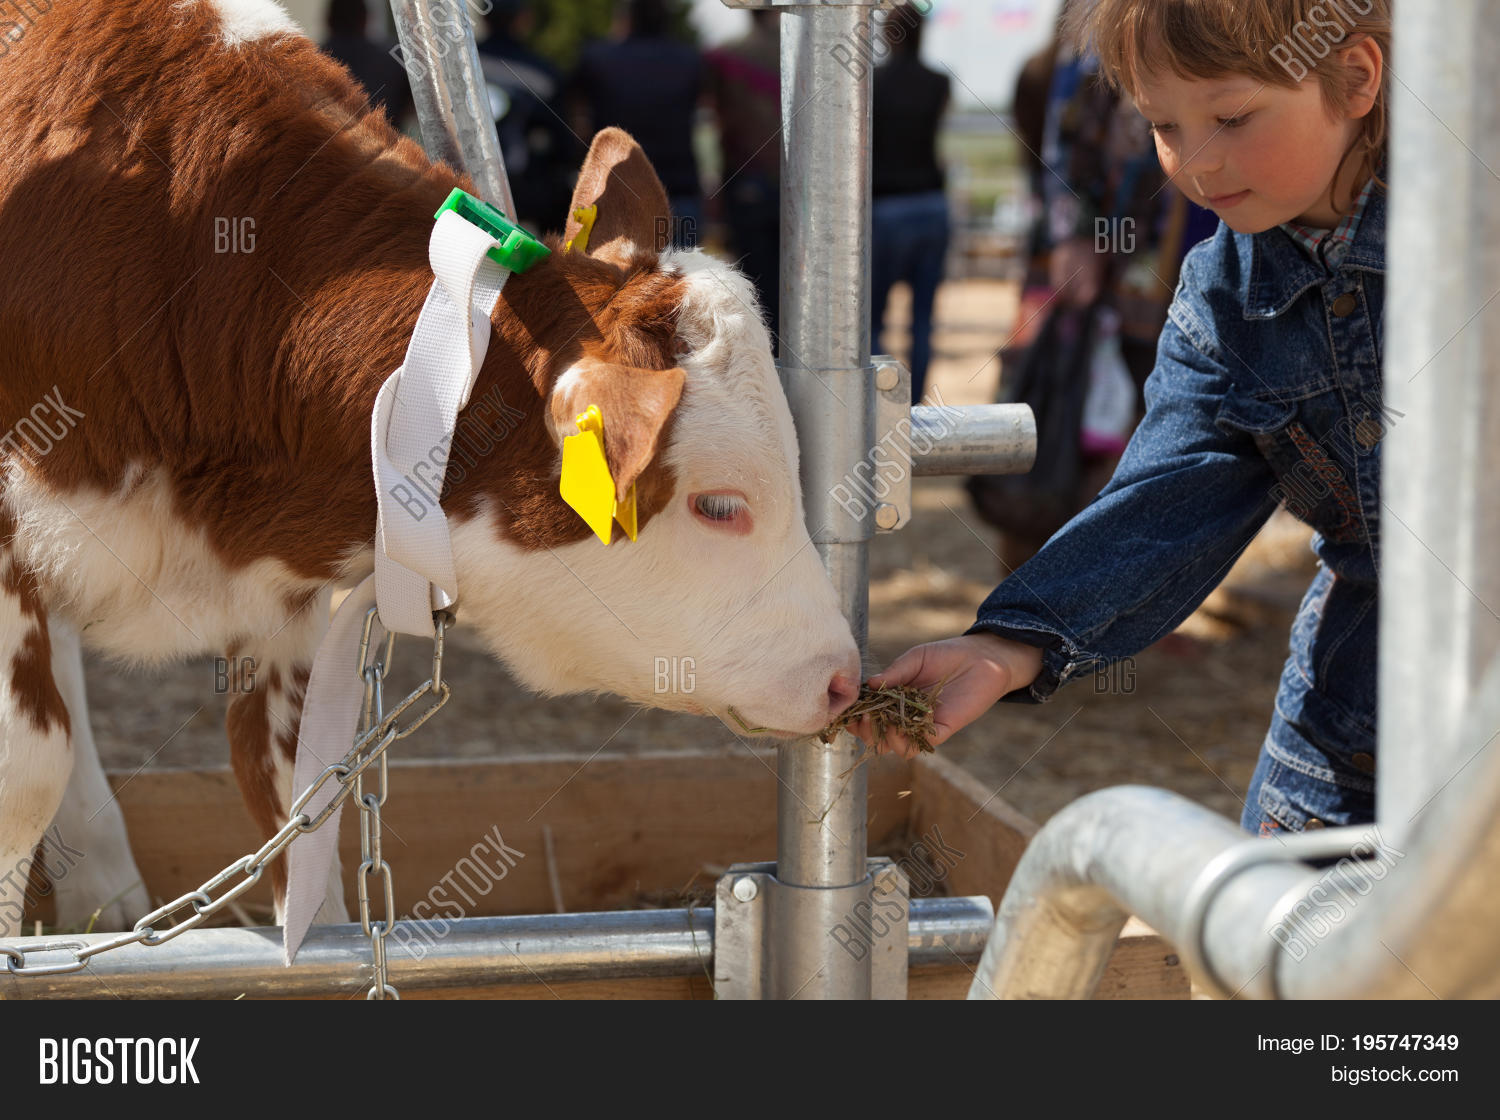 4-h,agriculture,animals,babies,blond,boys,brown,bull,calf,cattle,caucasian,cheerful,child,childhood,club,color,cow,cute,domestic,ethnicity,farm,farmer,fence,field,girls,grass,hair,happiness,horizontal,industry,lifestyles,livestock,males,nature,one,outdoors,people,person,pets,rural,scene,smiling,summer,togetherness,years,young,zoo